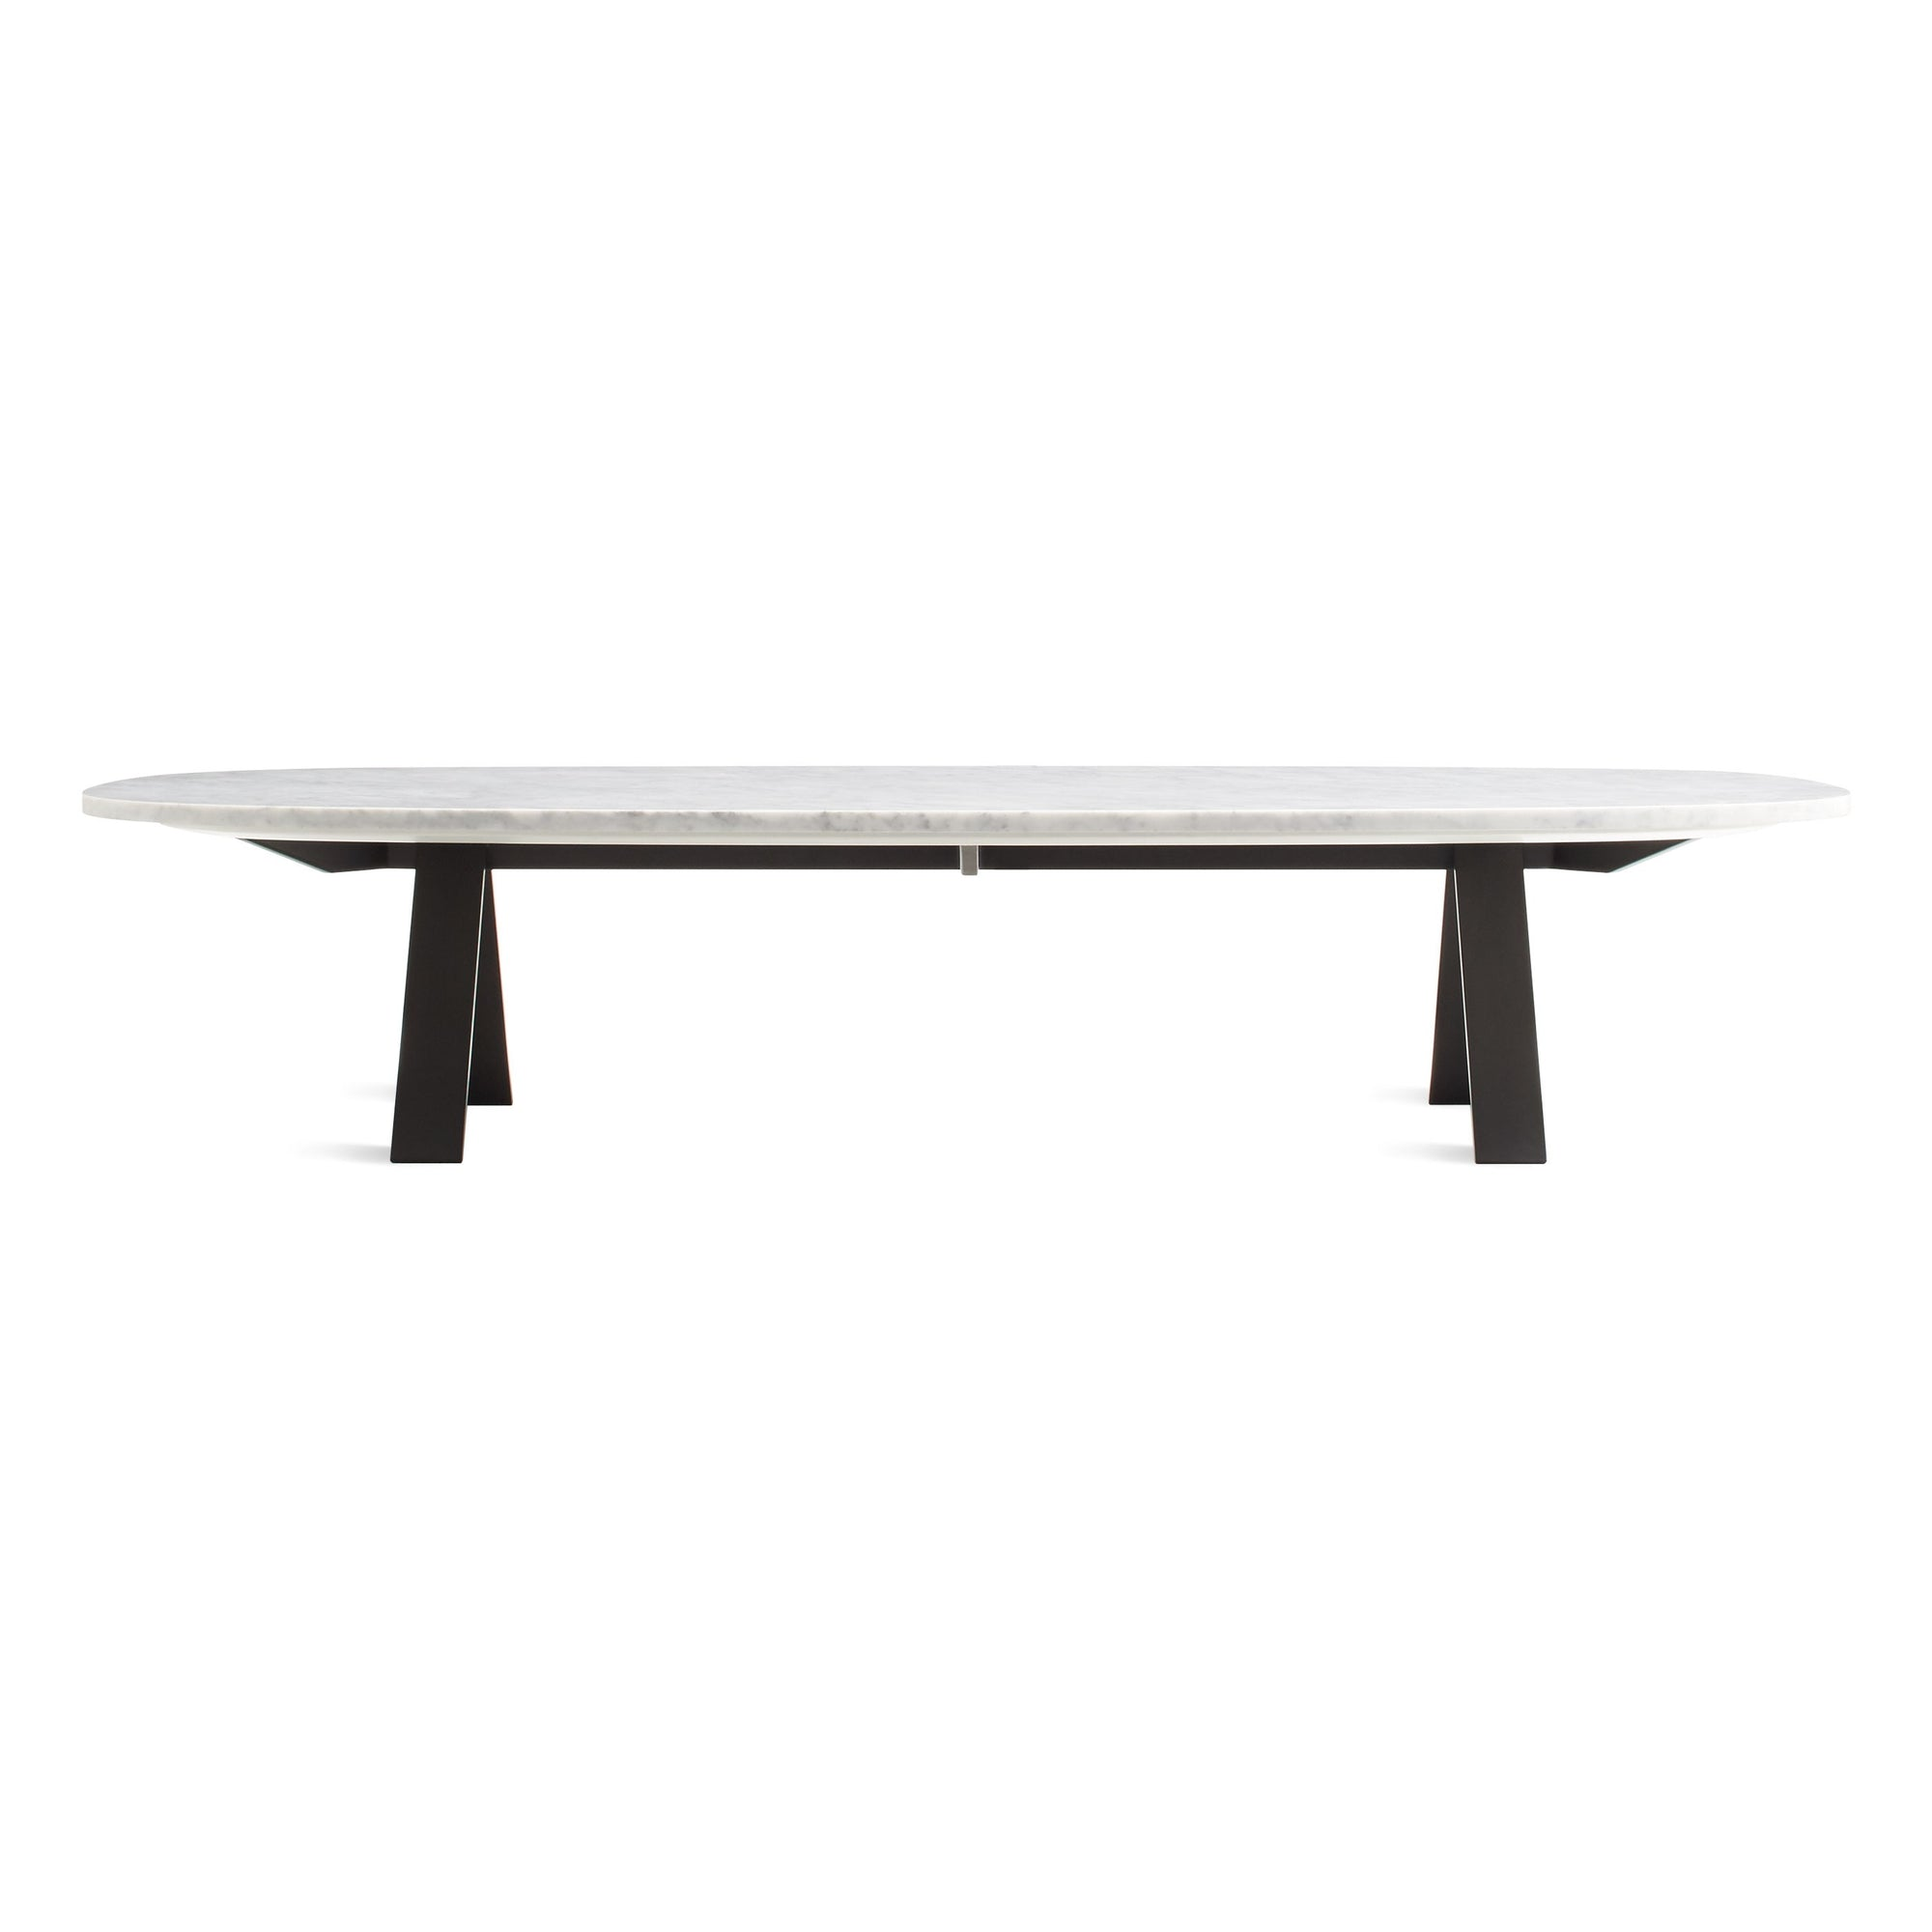 Super Swoval Coffee Table Area - Super low coffee table